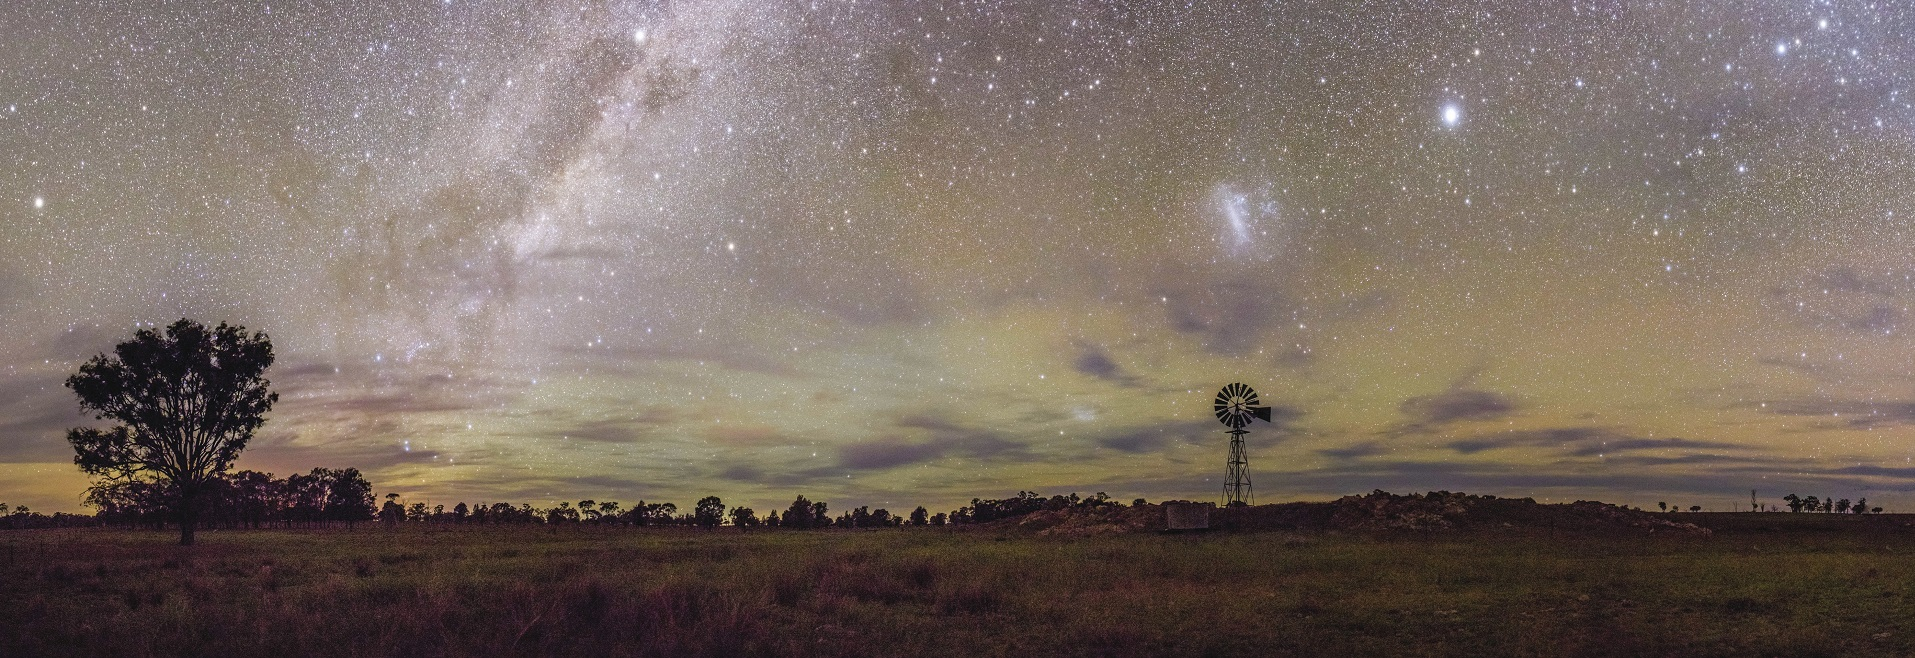 Sleeping Under the Stars in the Outback